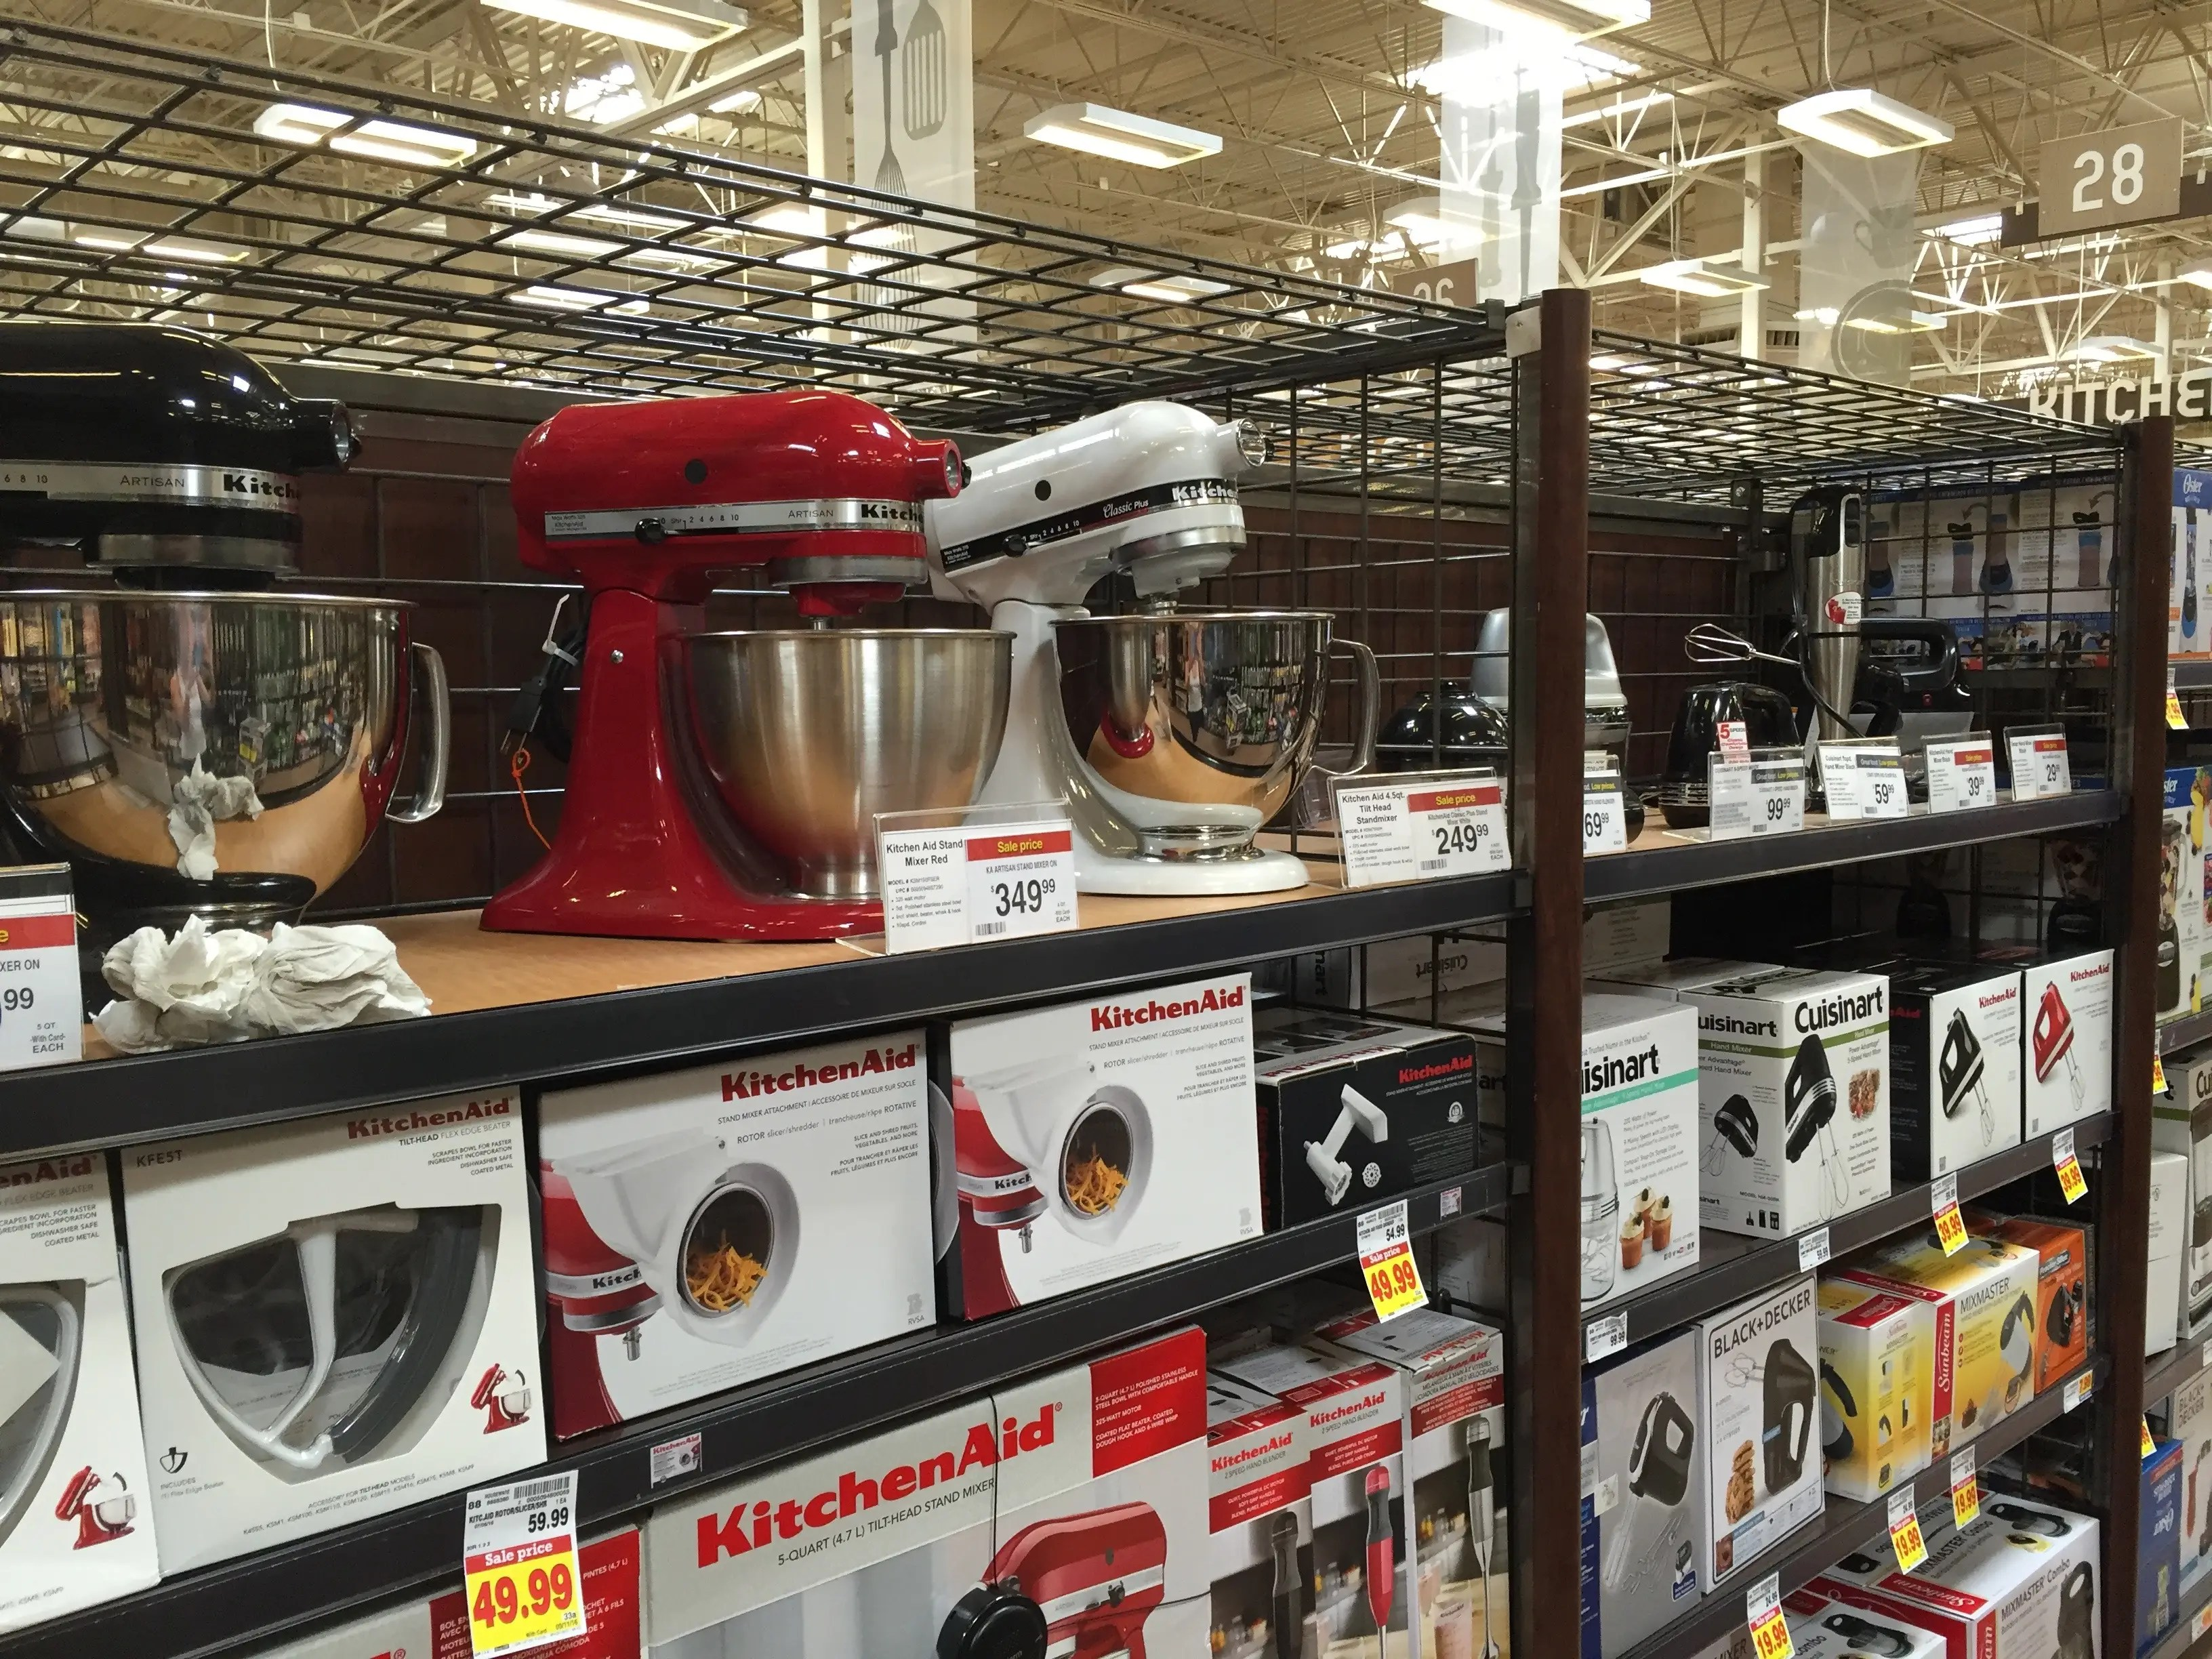 ... from standing mixers and microwaves to mini refrigerators and blenders.